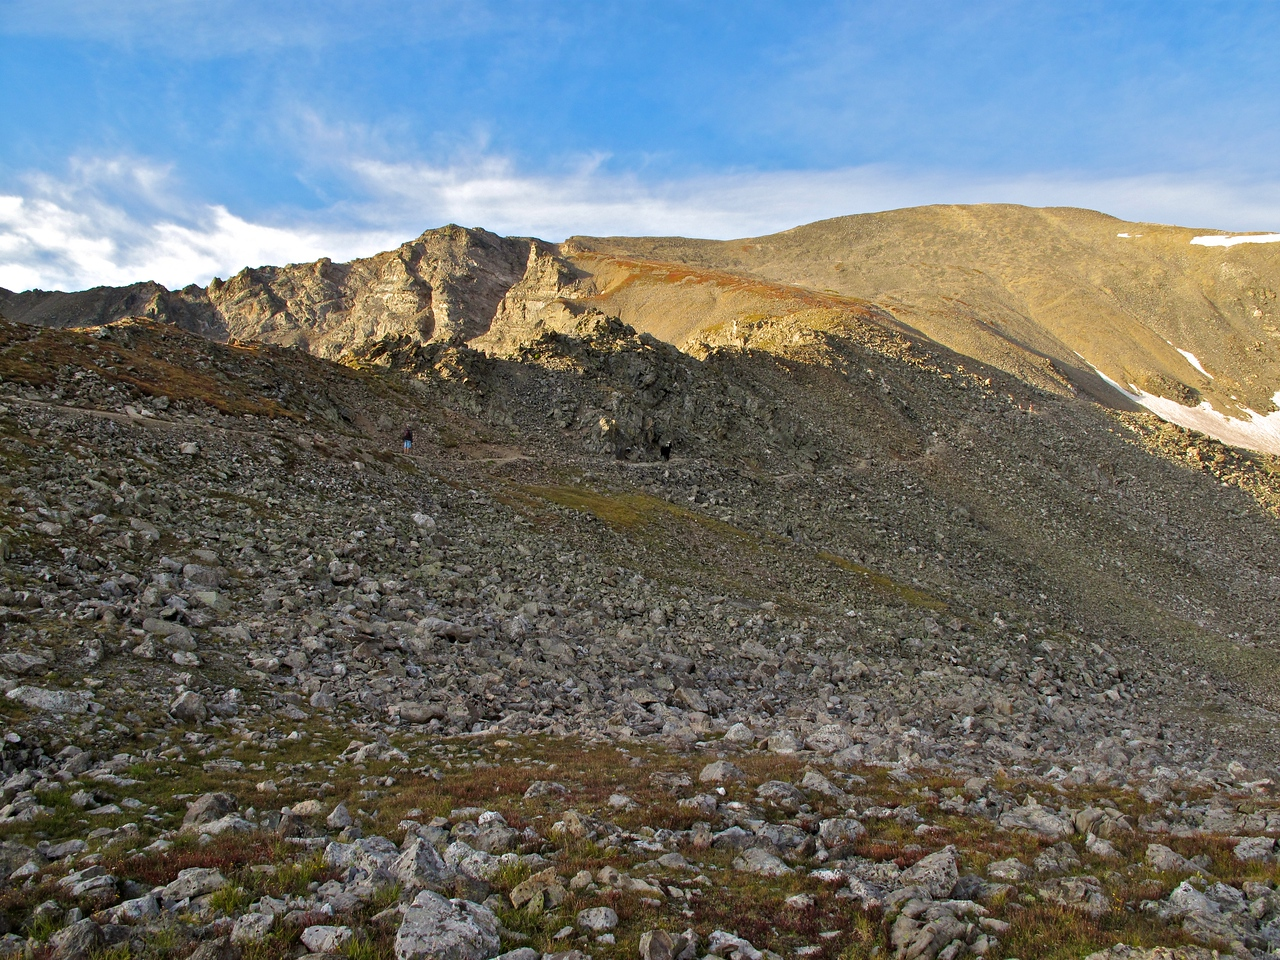 """Local Indians called Grays and Torreys Peaks """"The Ant Hills,"""" and early miners referred to them as """"Twin Peaks."""" Torreys was sometimes called """"Irwins Peak,"""" after one of the first prospectors to explore the area, Richard Irwin, who built the first horse trail to the top of Grays Peak."""